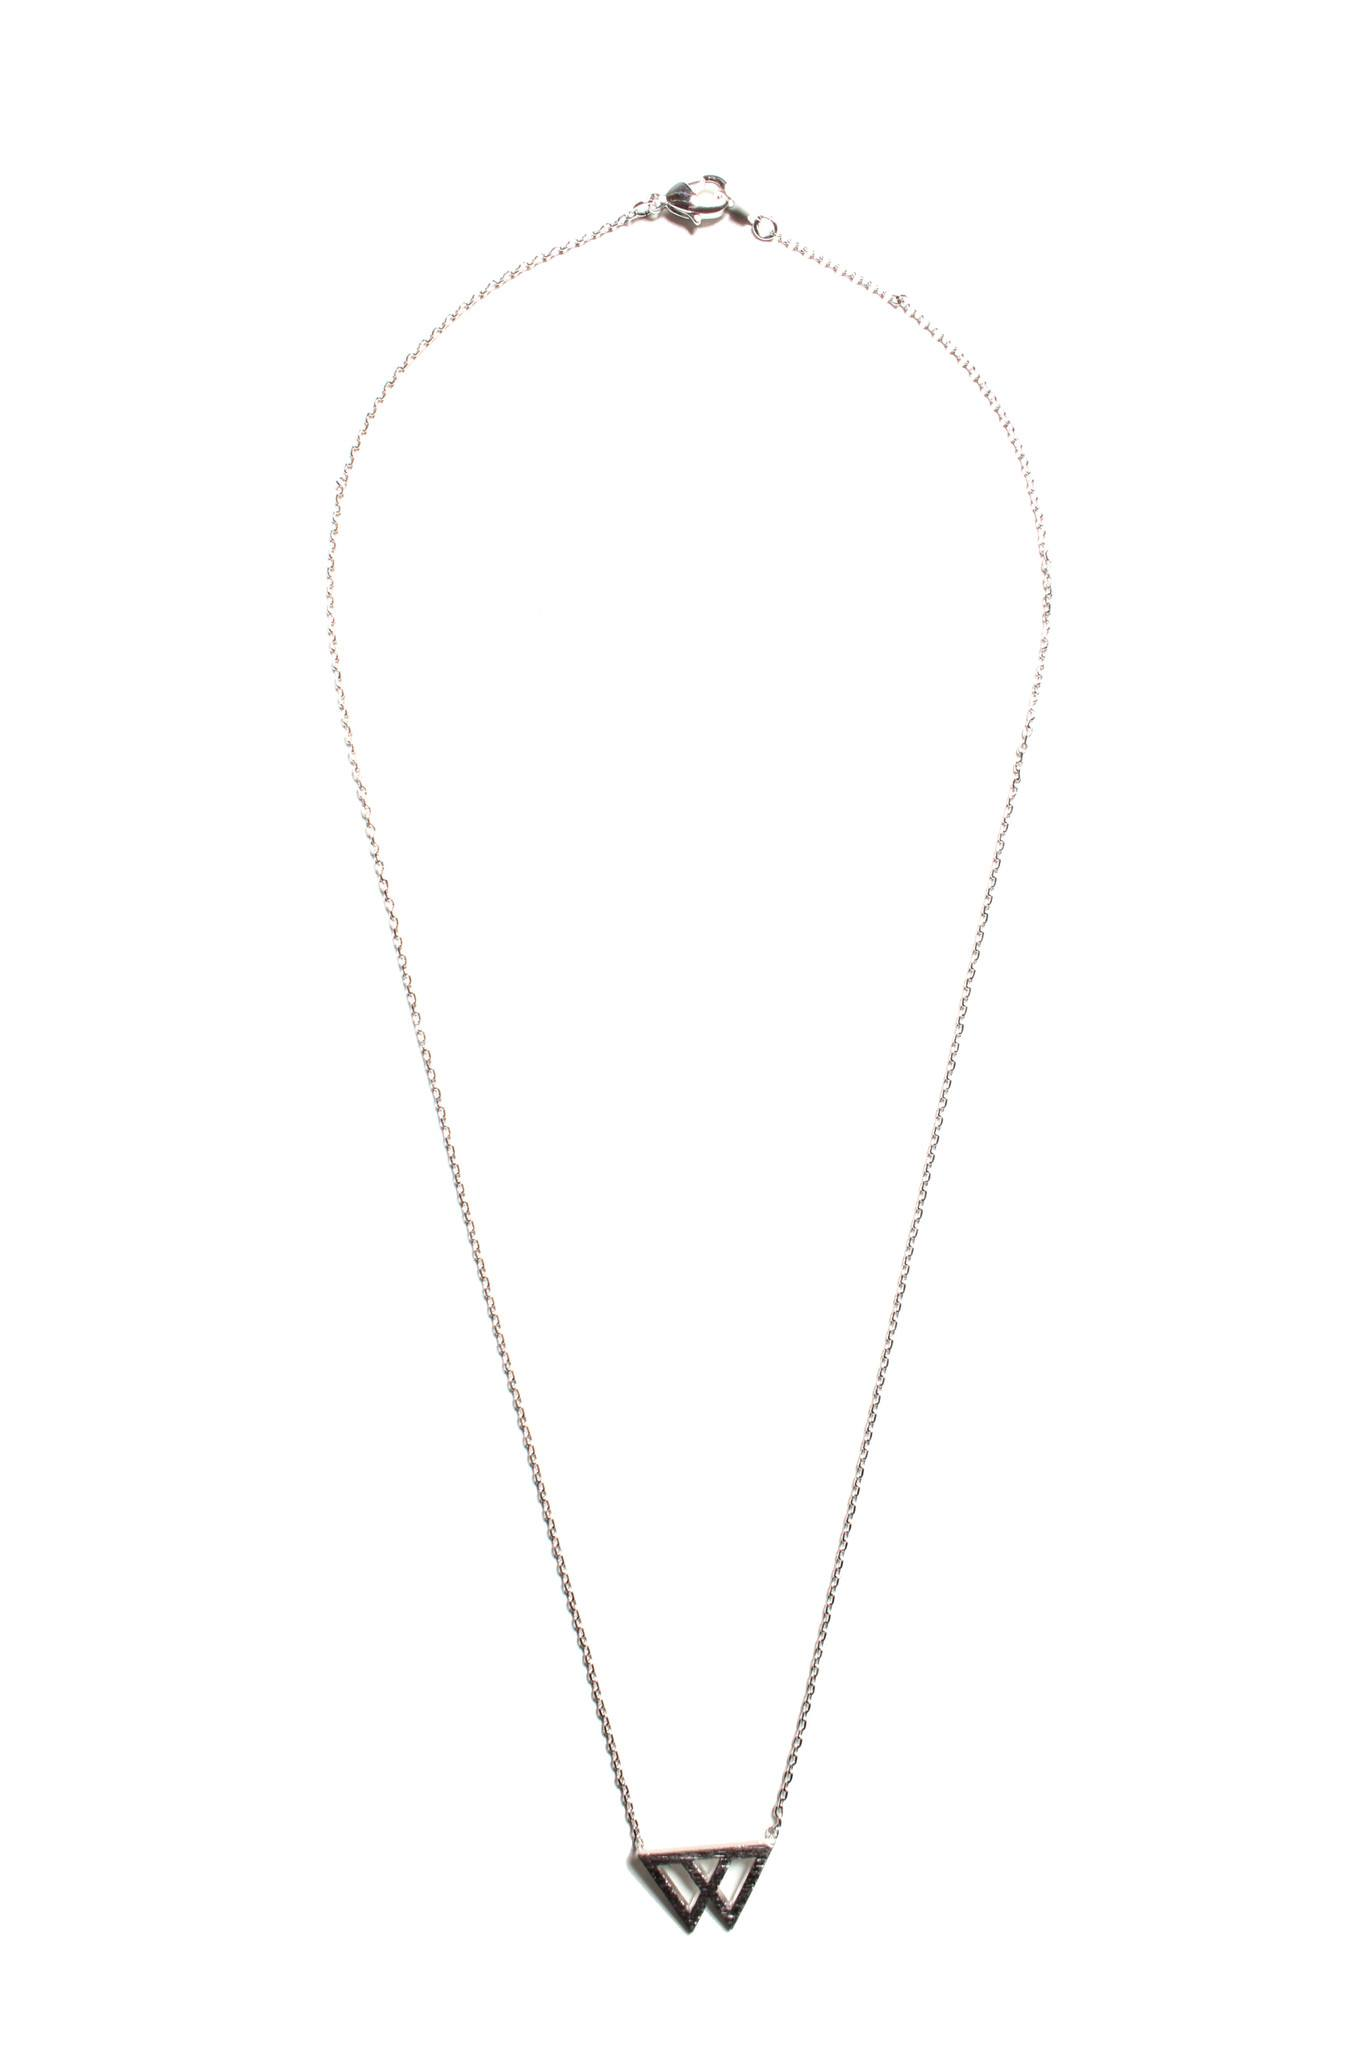 Linked Triangle Necklace - Silver